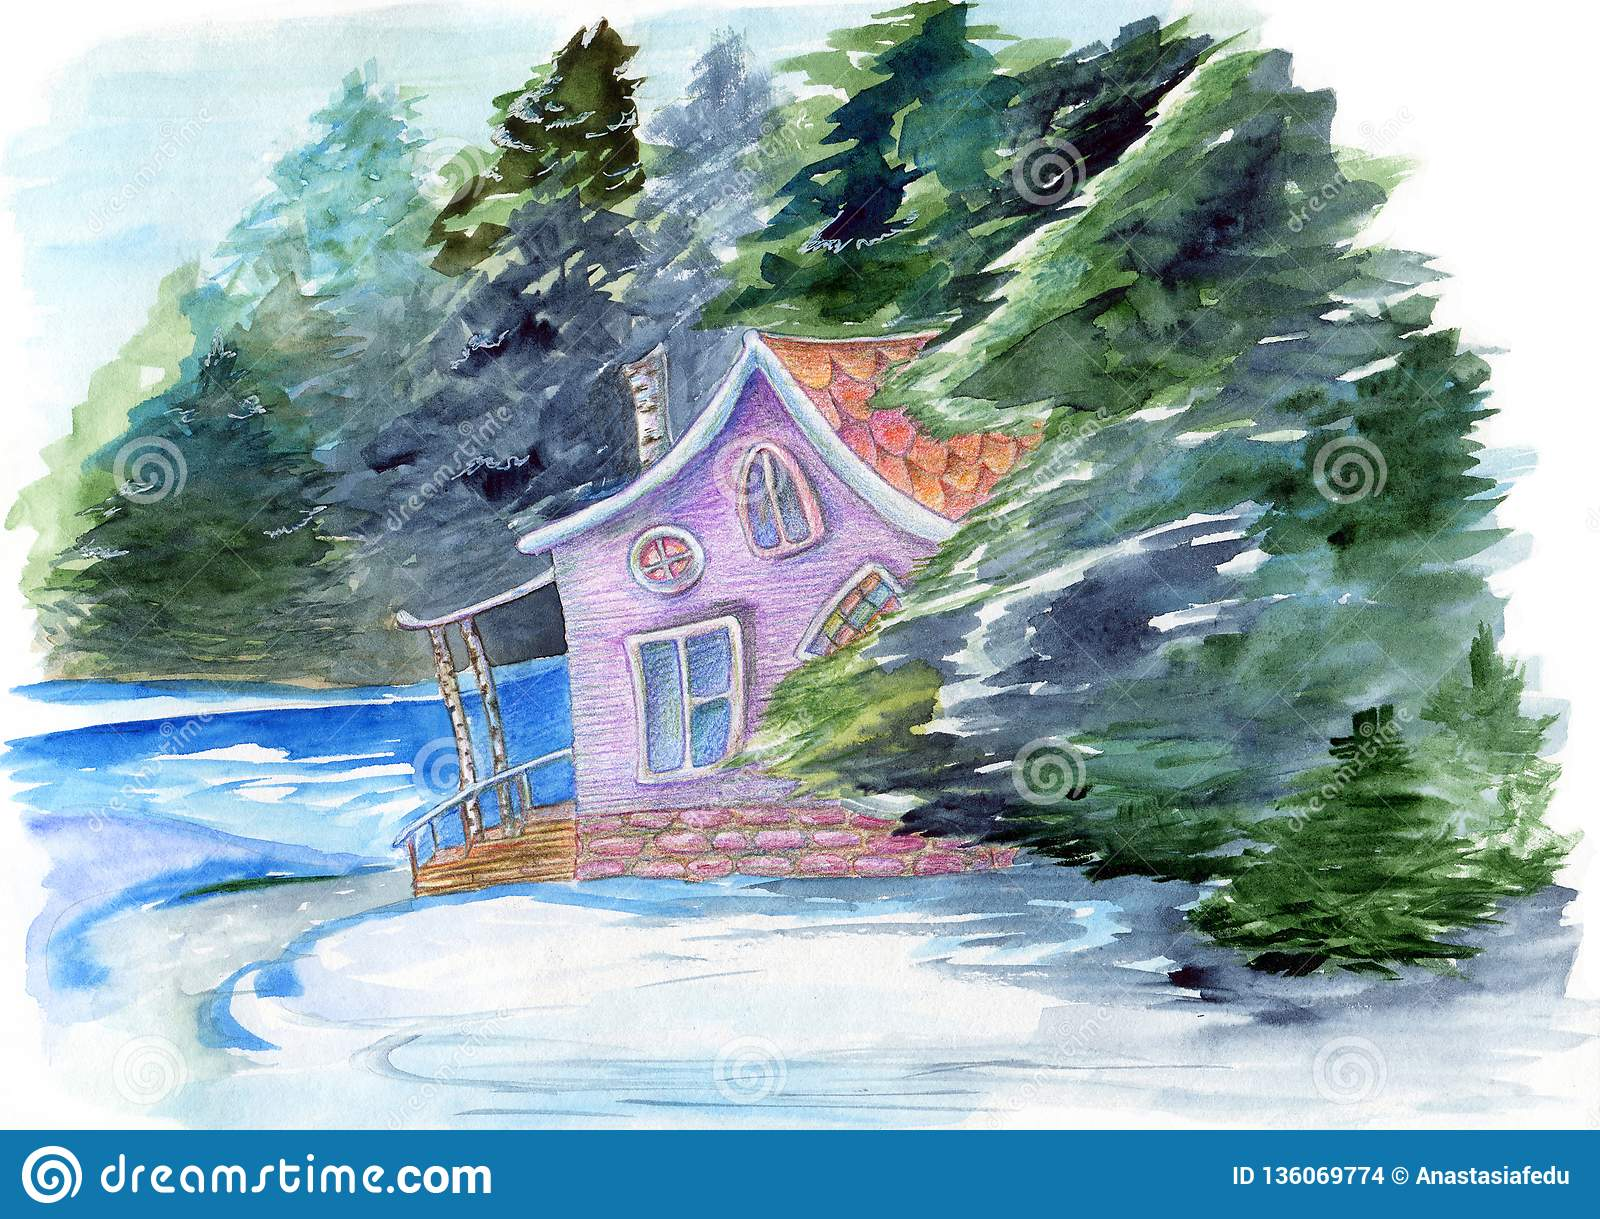 Fabulous watercolor hand drawn illustration with fairyhouse in winter forest. Mystery house surrounded by trees and water on the w